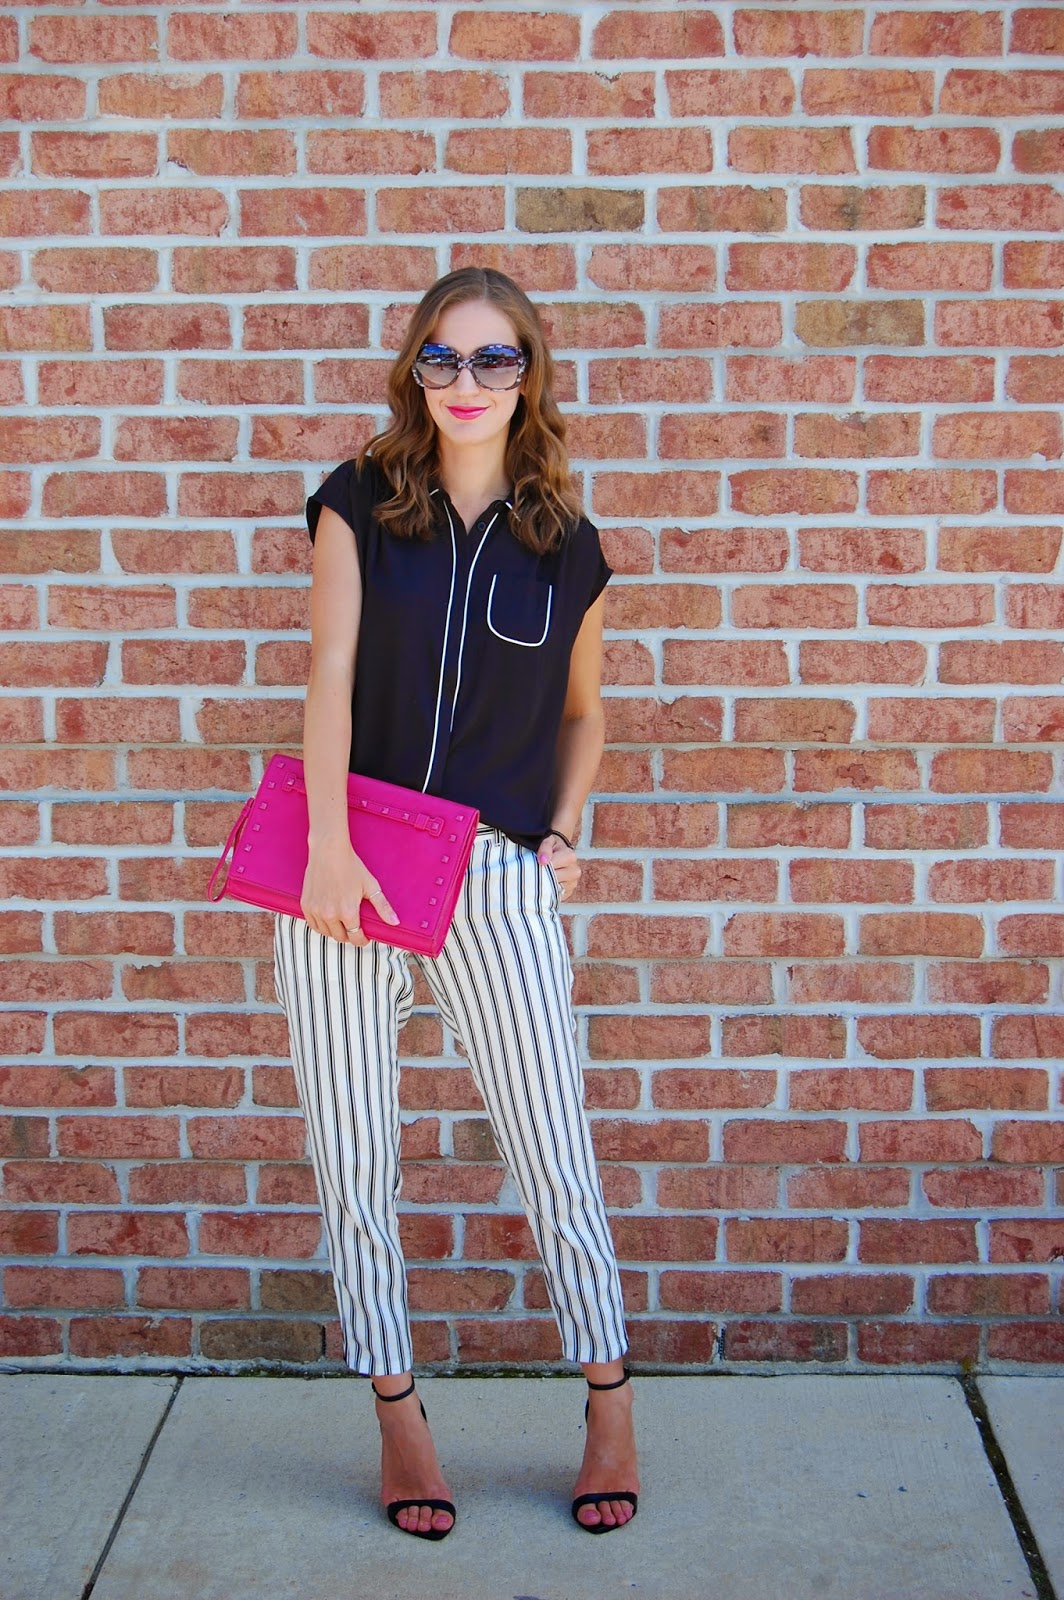 Wearing Loft new summer arrivals, Black Piped shirt, Striped Summer Pants in Marisa Fit, Neiman Marcus Last Call Pink Tonal Stud Trim Clutch, Zara Black Ankle Strap Heels, Black and White Outfit